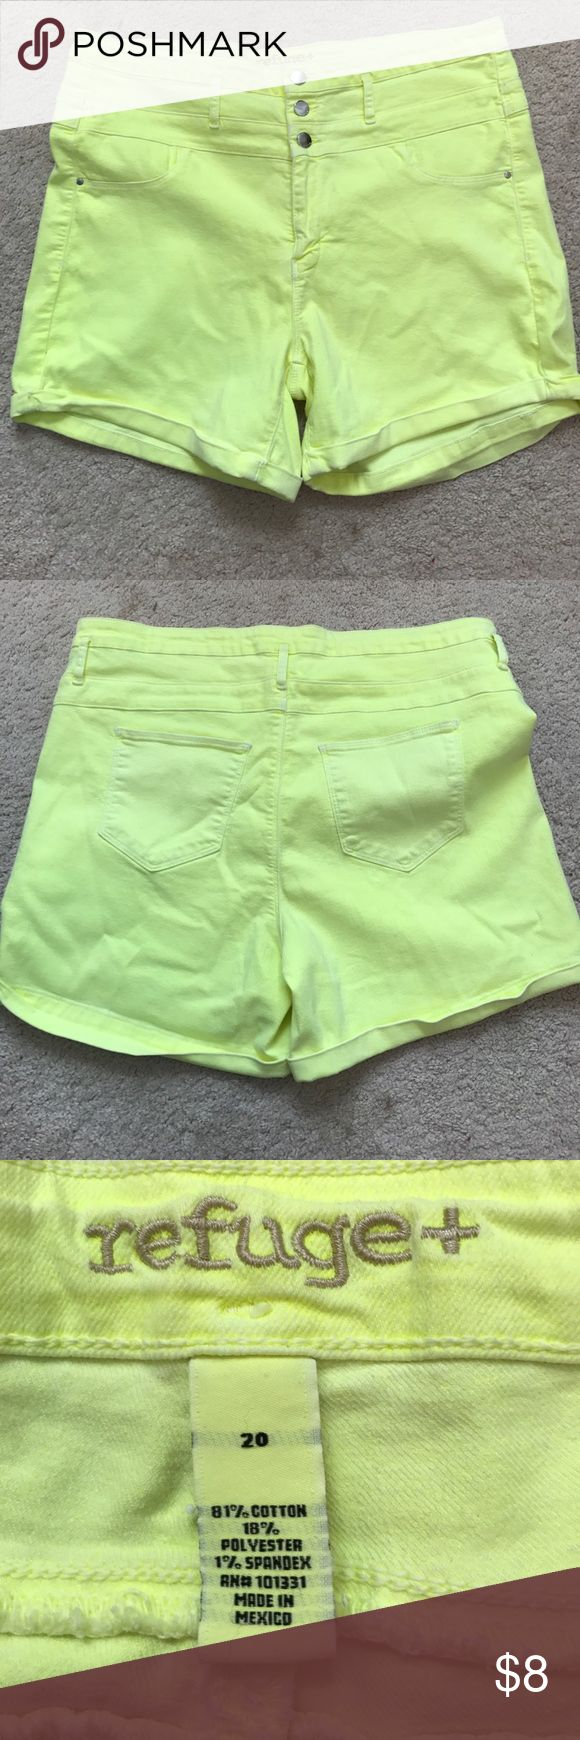 High waist shorts from Charlotte Russe Only worn once, high waist, neon yellow shorts. refuge Shorts